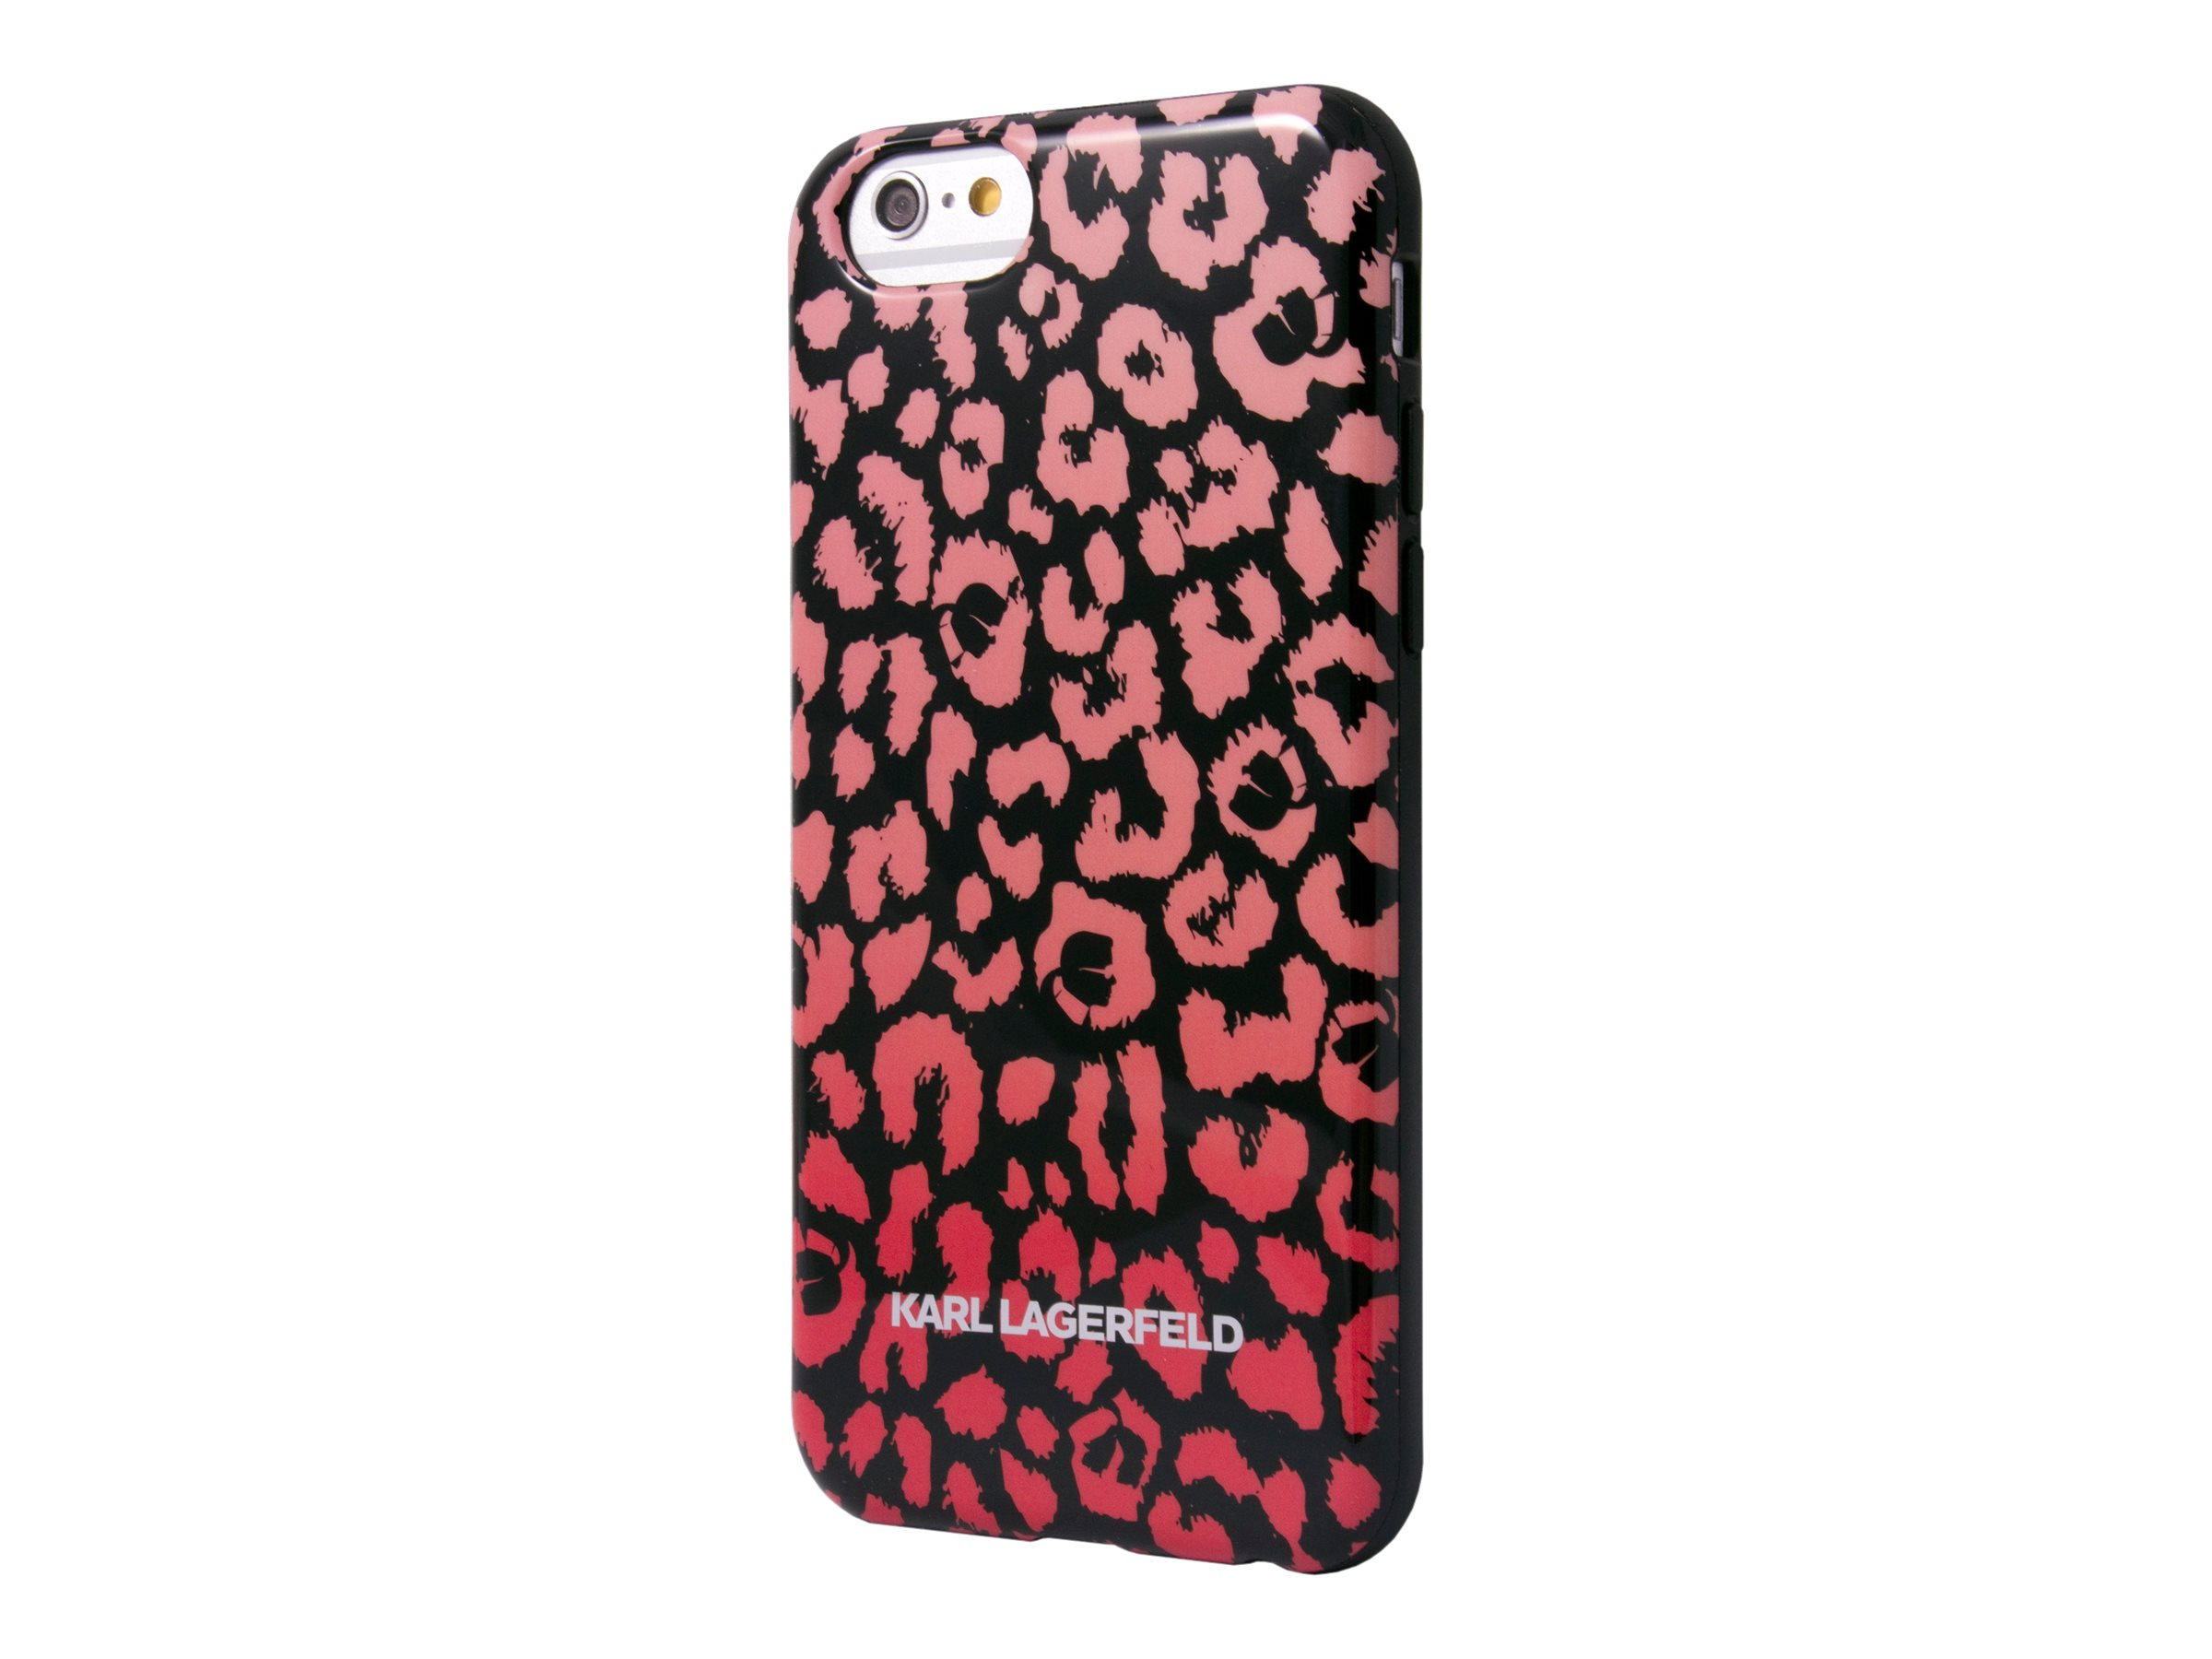 KARL LAGERFELD KAMOUFLAGE - Coque de protection pour iPhone 6 - rose